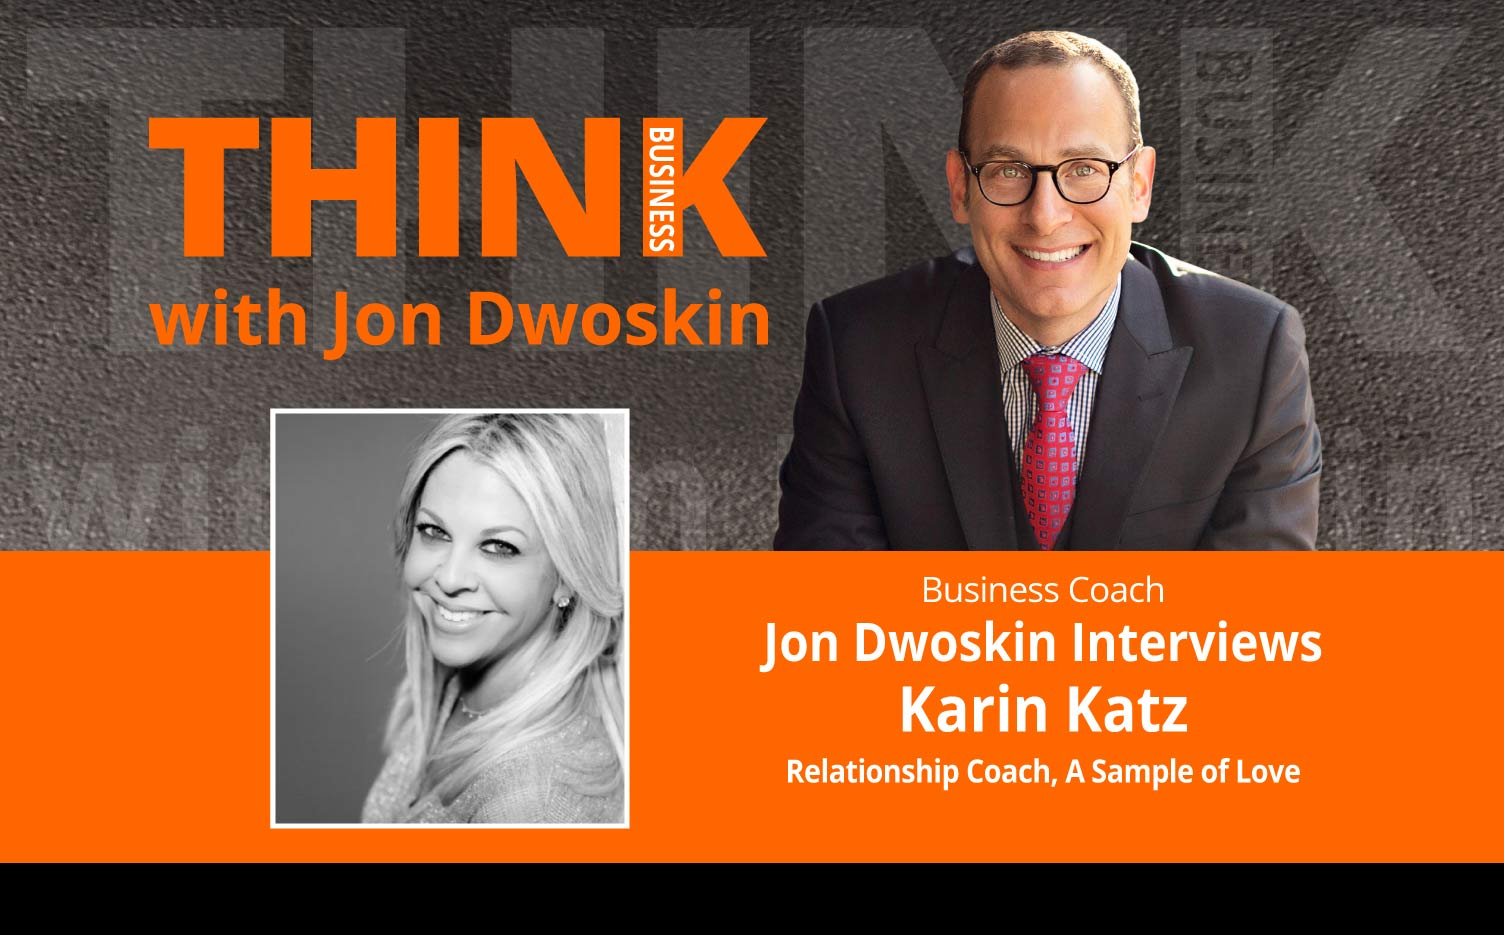 THINK Business Podcast: Jon Dwoskin Interviews Karin Katz, Relationship Coach, A Sample of Love